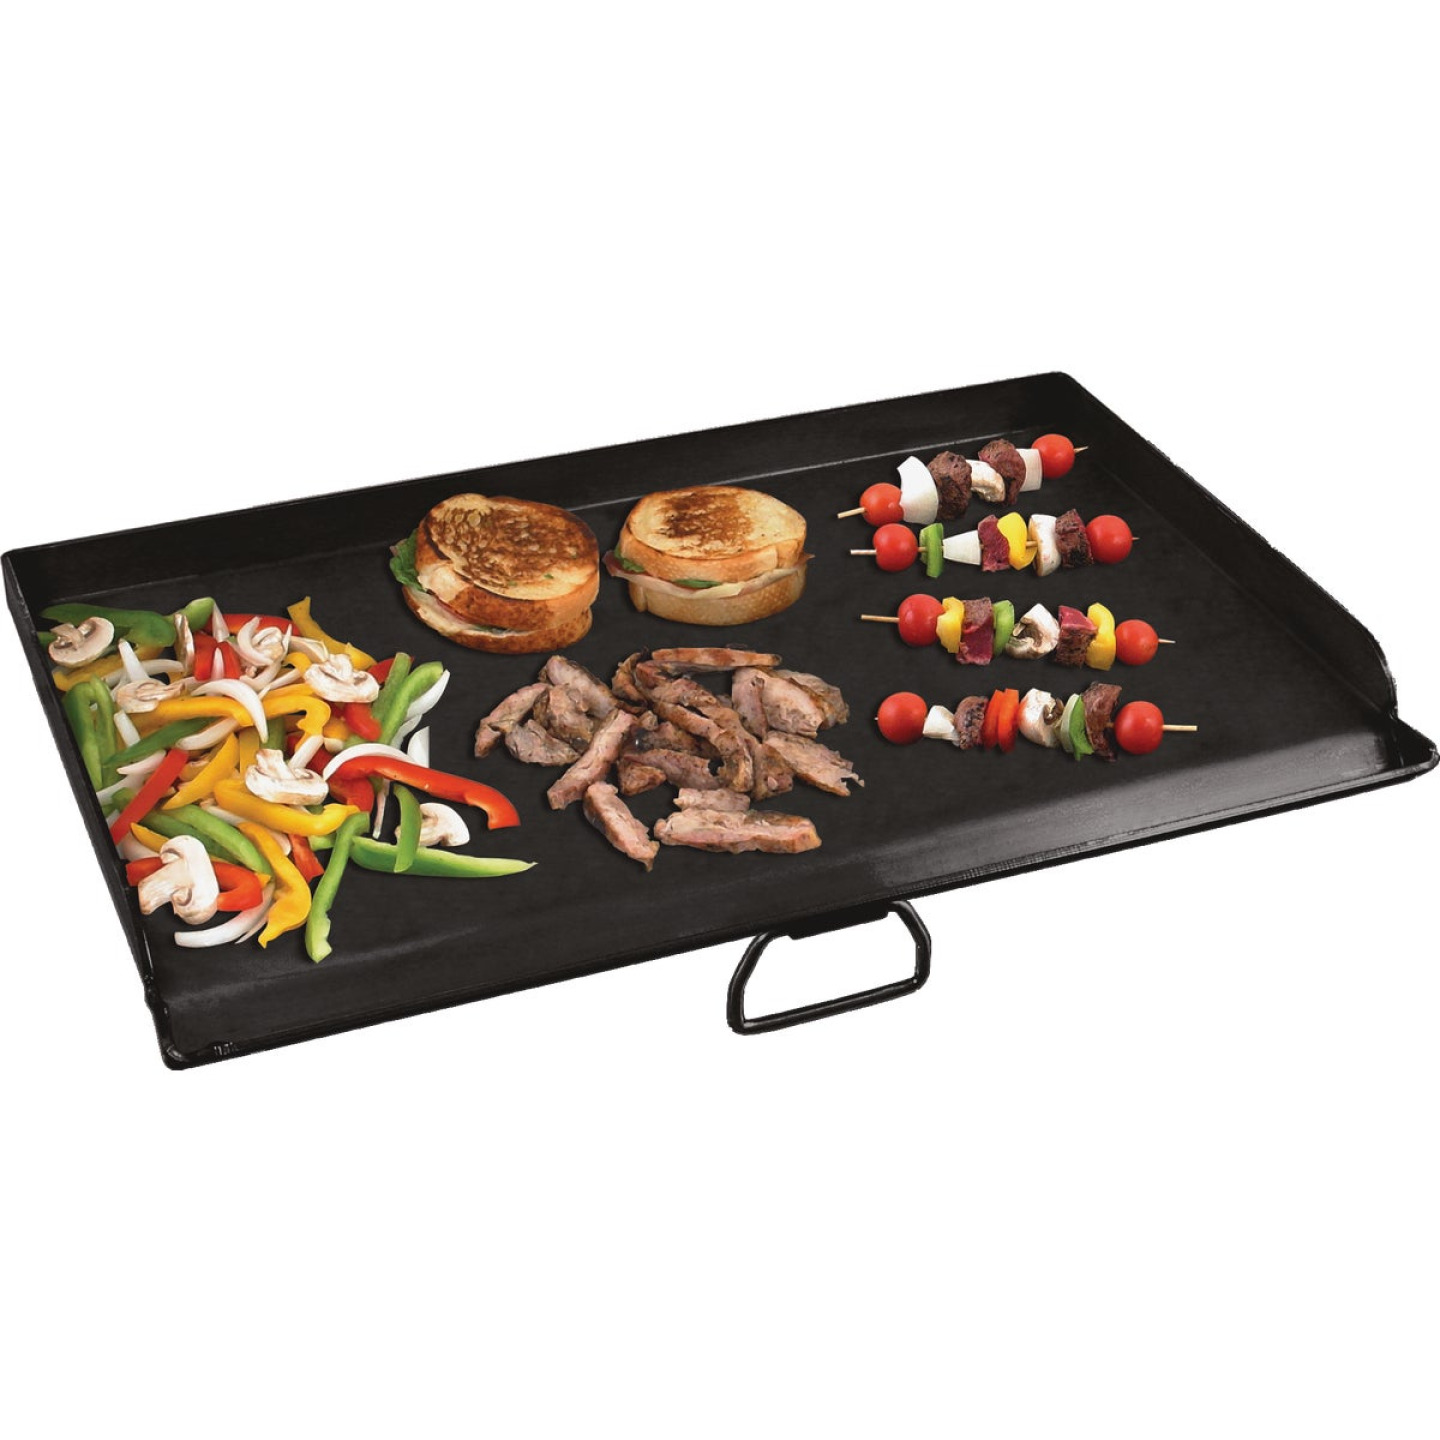 Camp Chef 14 In. W. x 32 In. L. Steel Professional Flat Top Griddle Image 1